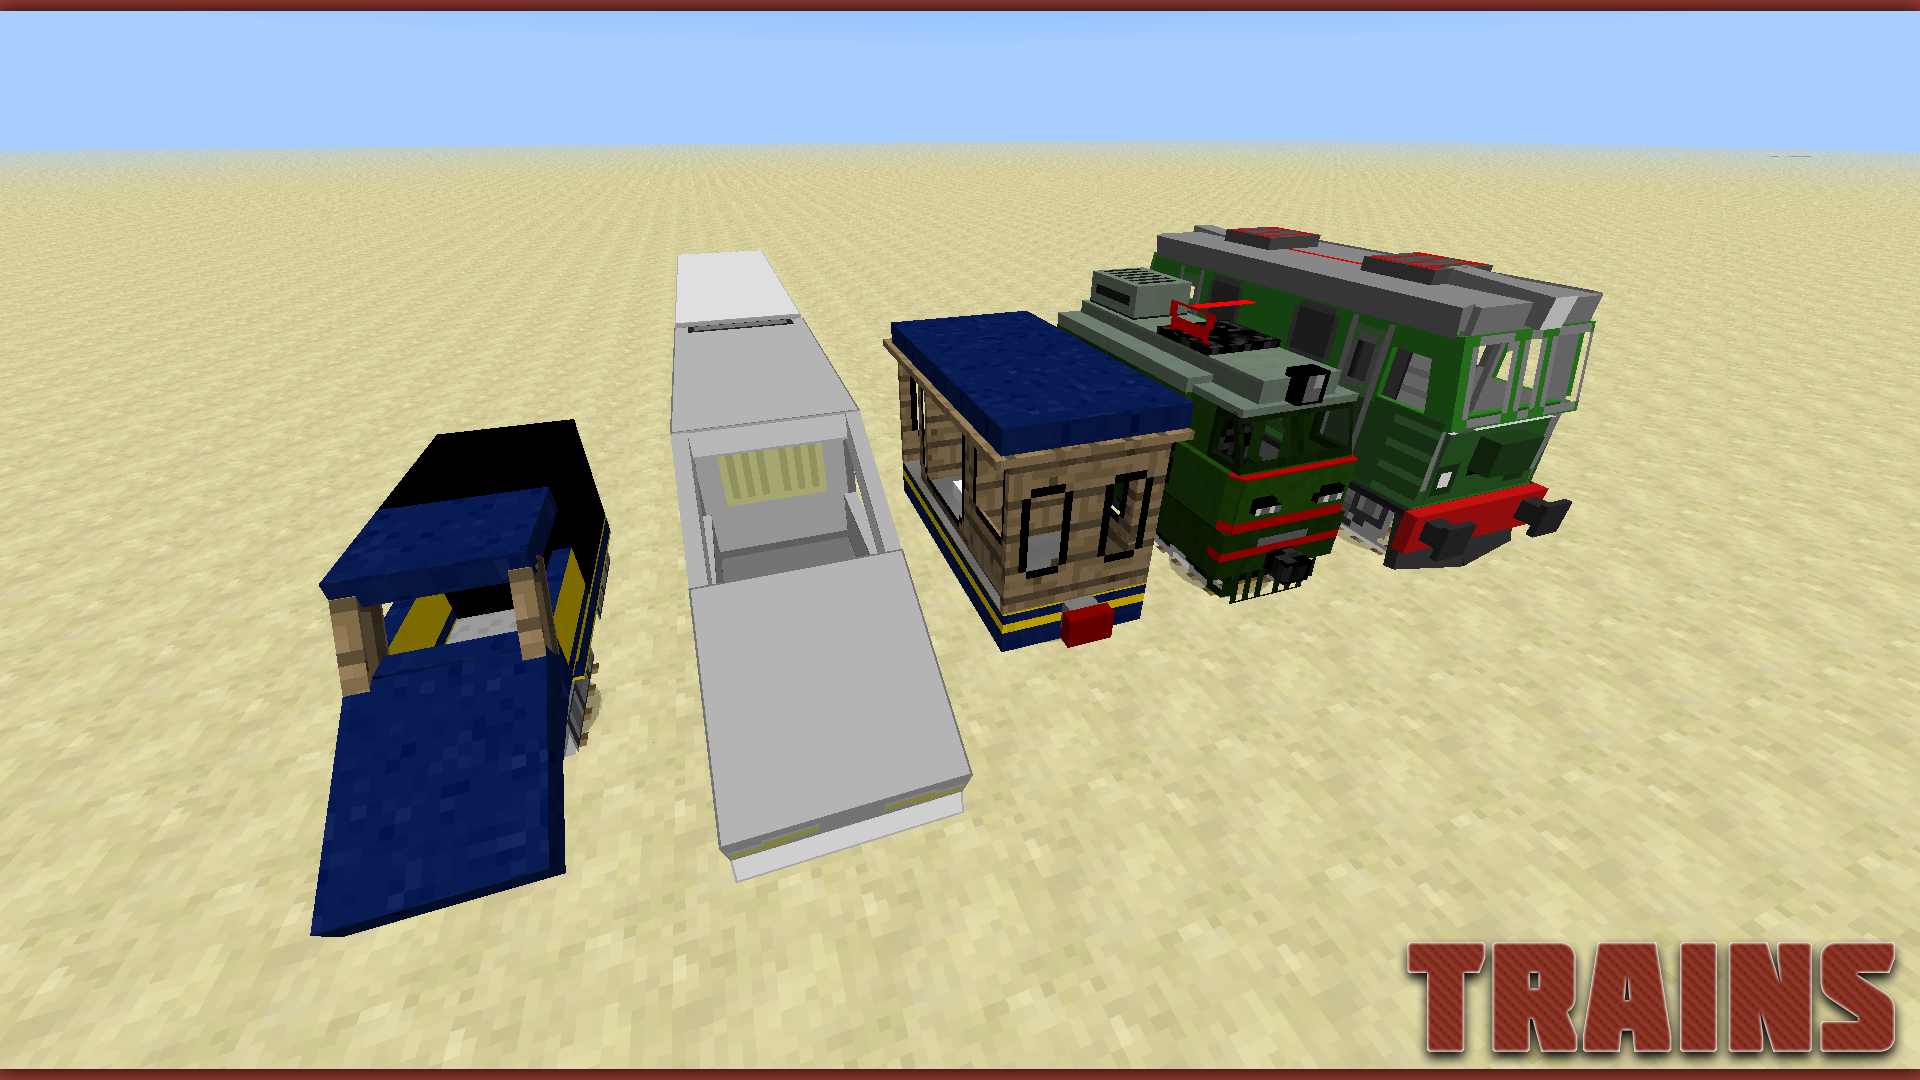 77d34  Trains1 Traincraft Screenshots